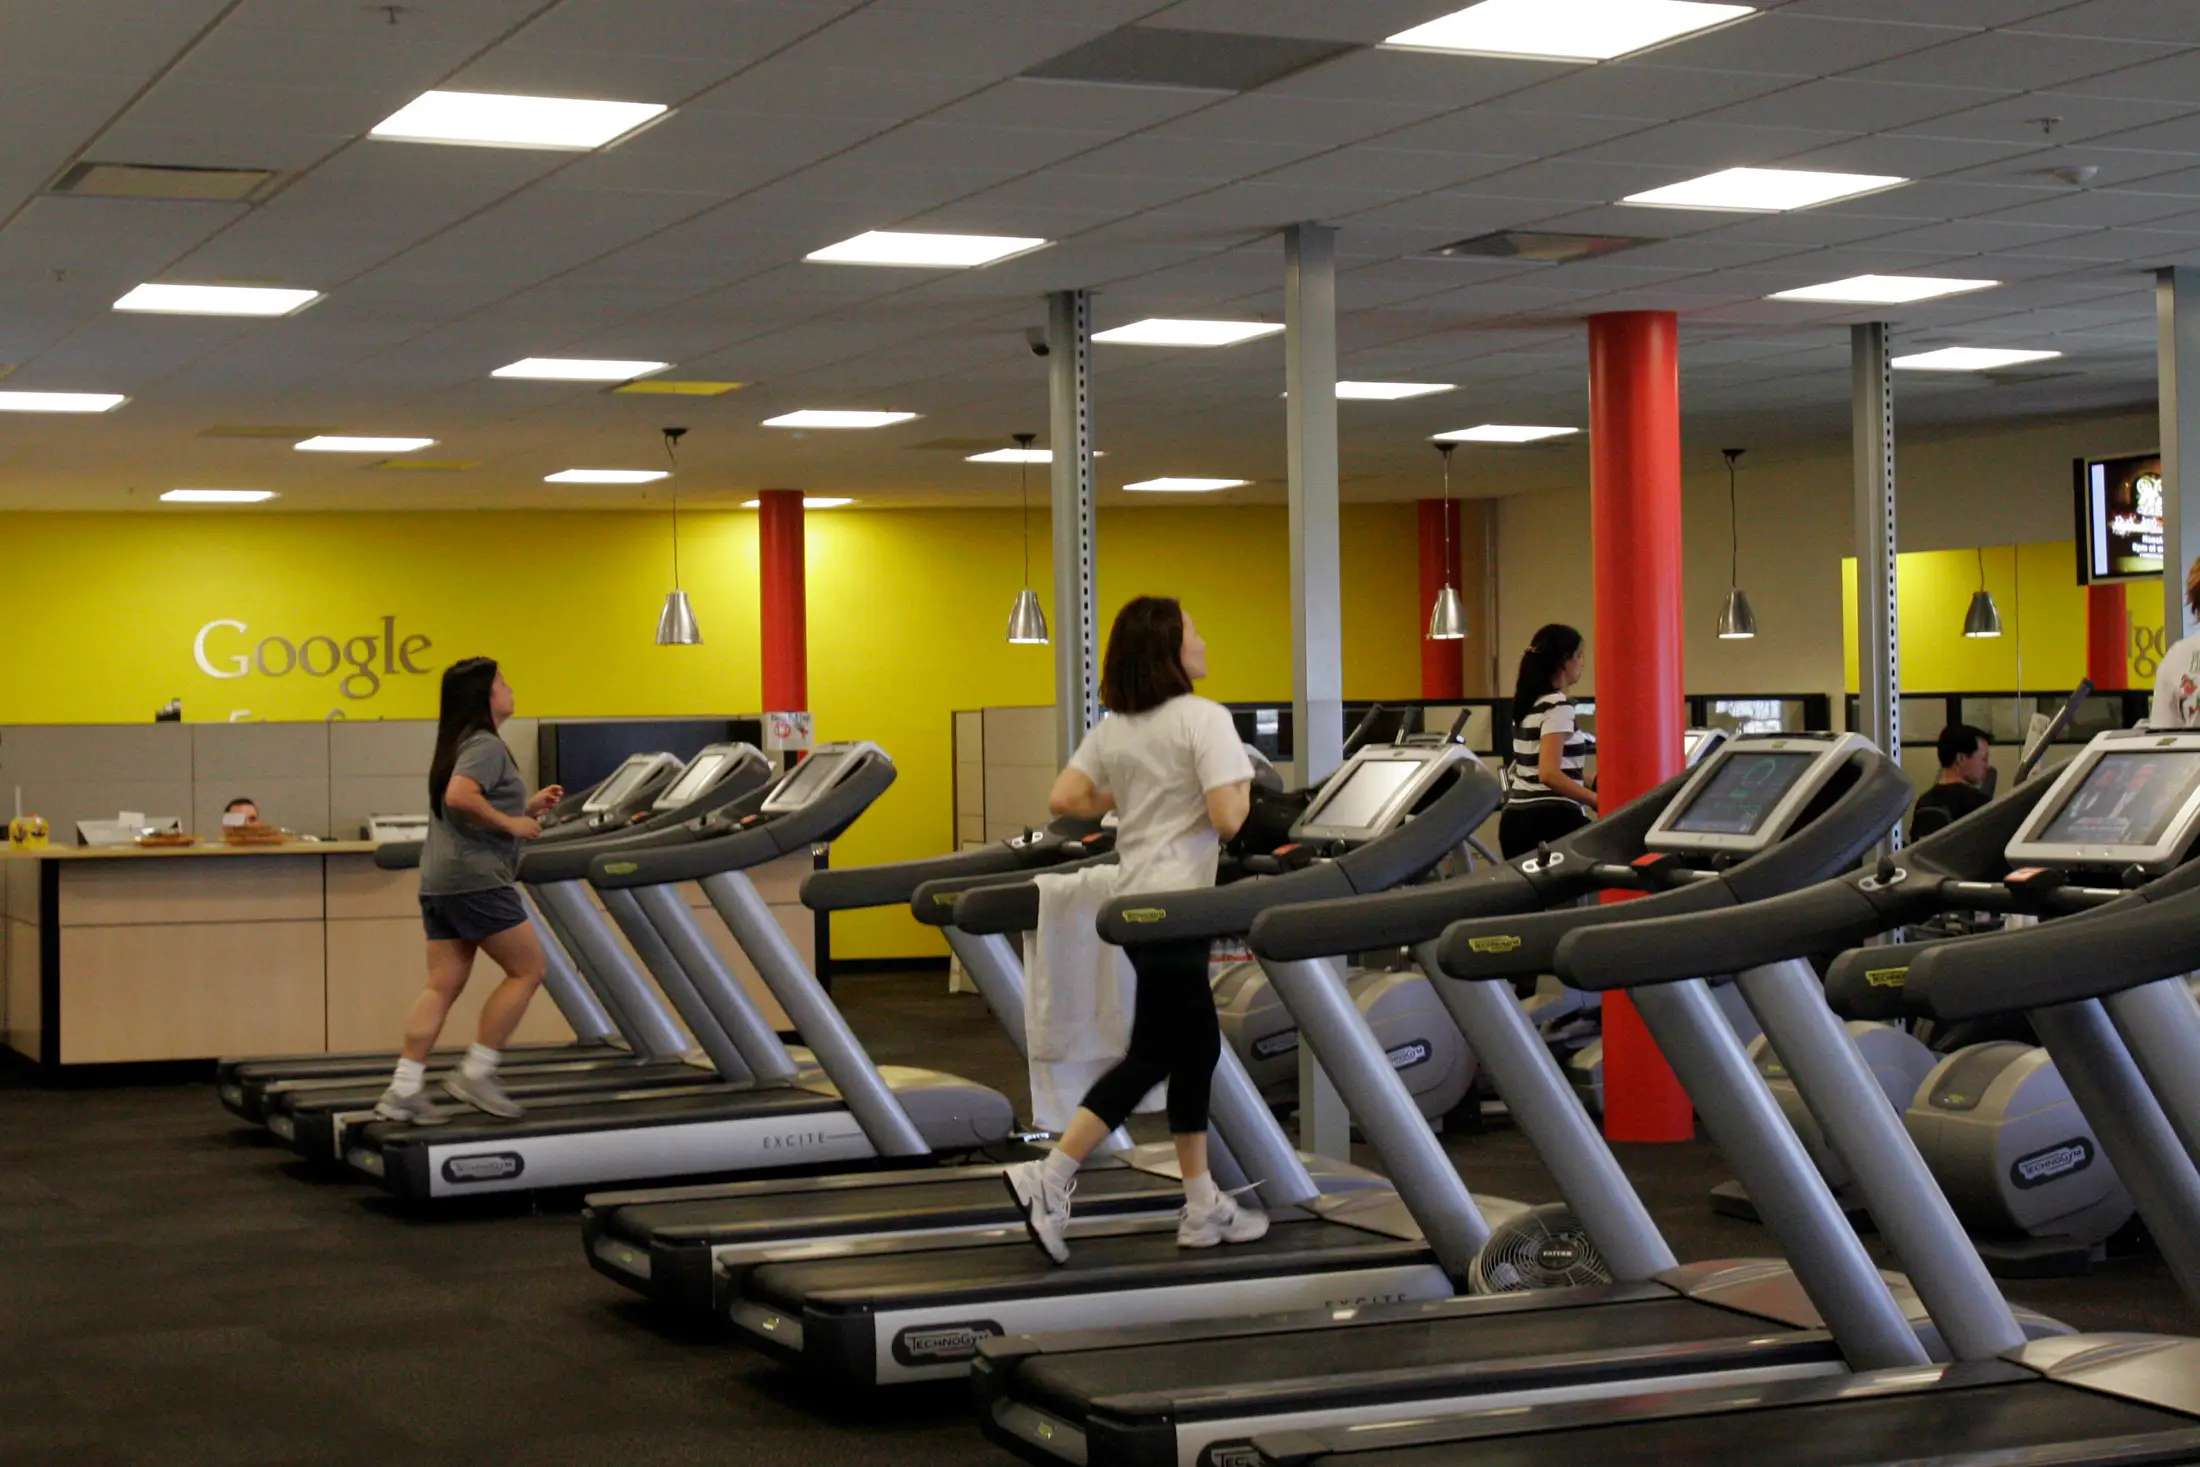 There are multiple fitness centers on campus. We didn't get to see any but here's a picture from a tour Google gave to Reuters a few years ago.